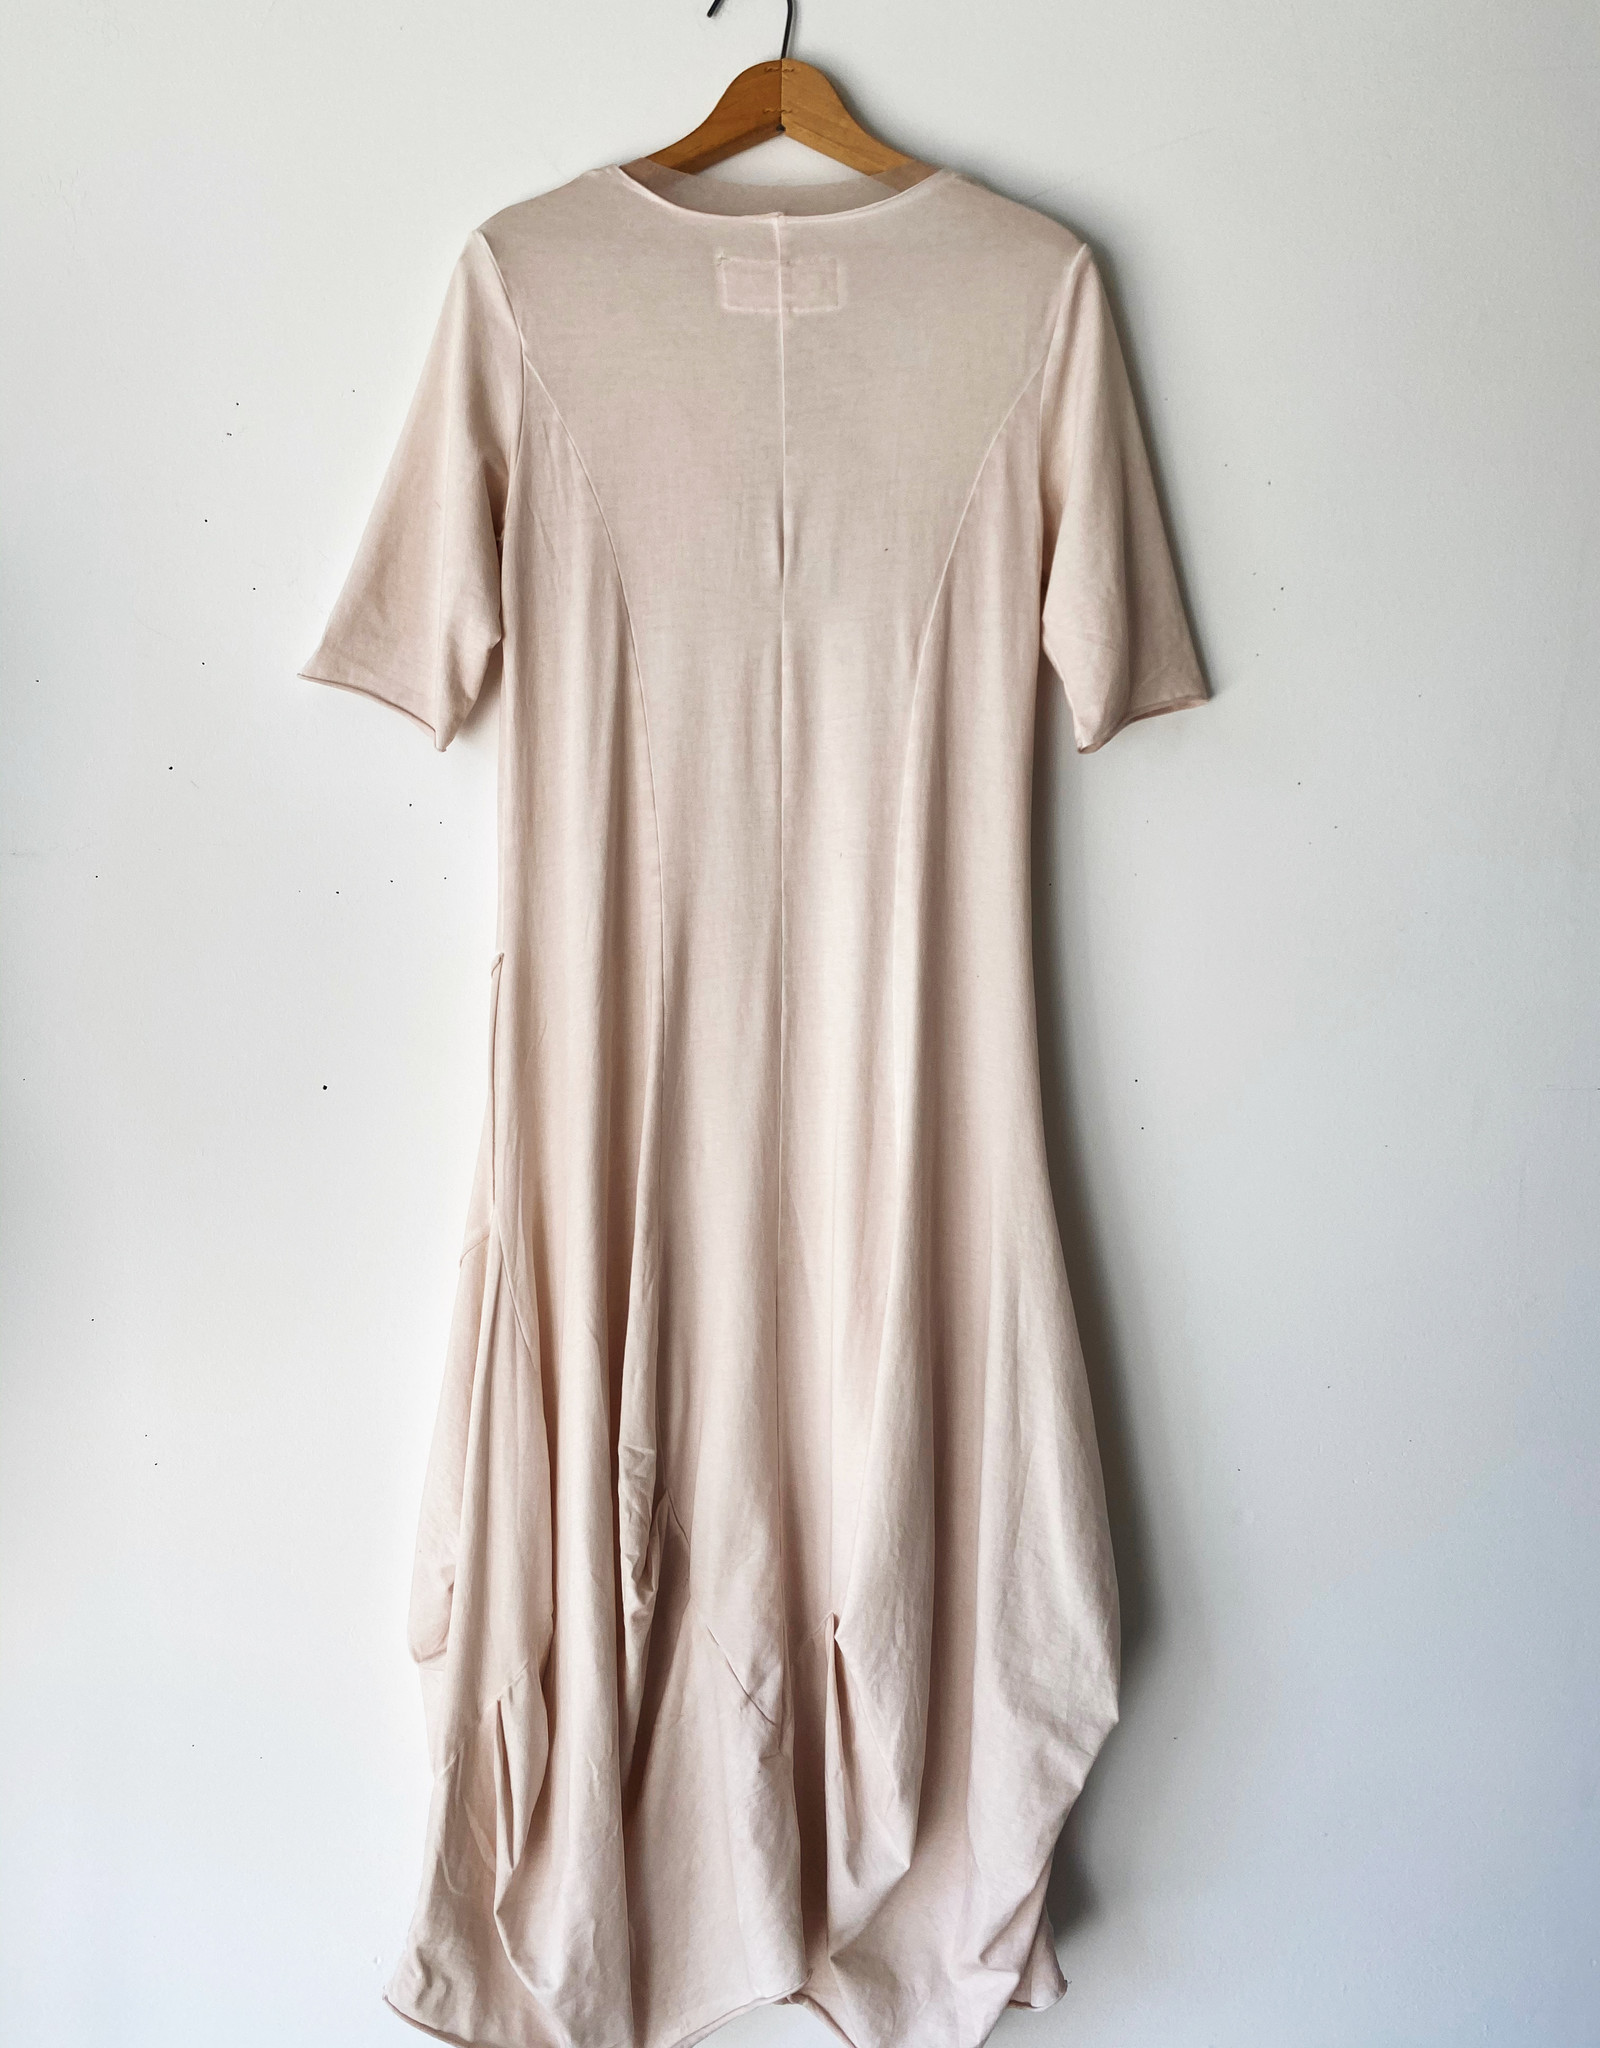 LUUKAA 20Y0504 LUUKAA LONG KNIT DRESS